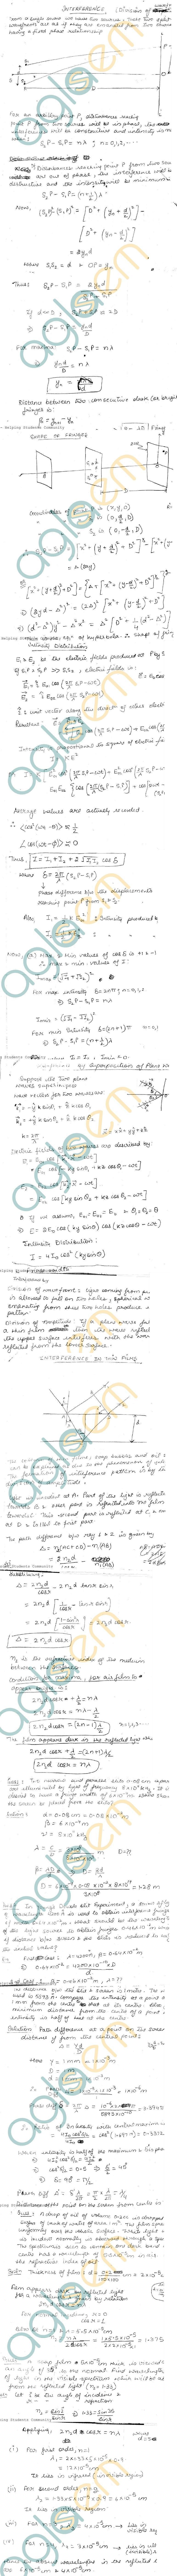 DTU: Notes - 1 Sem Physics - Optics